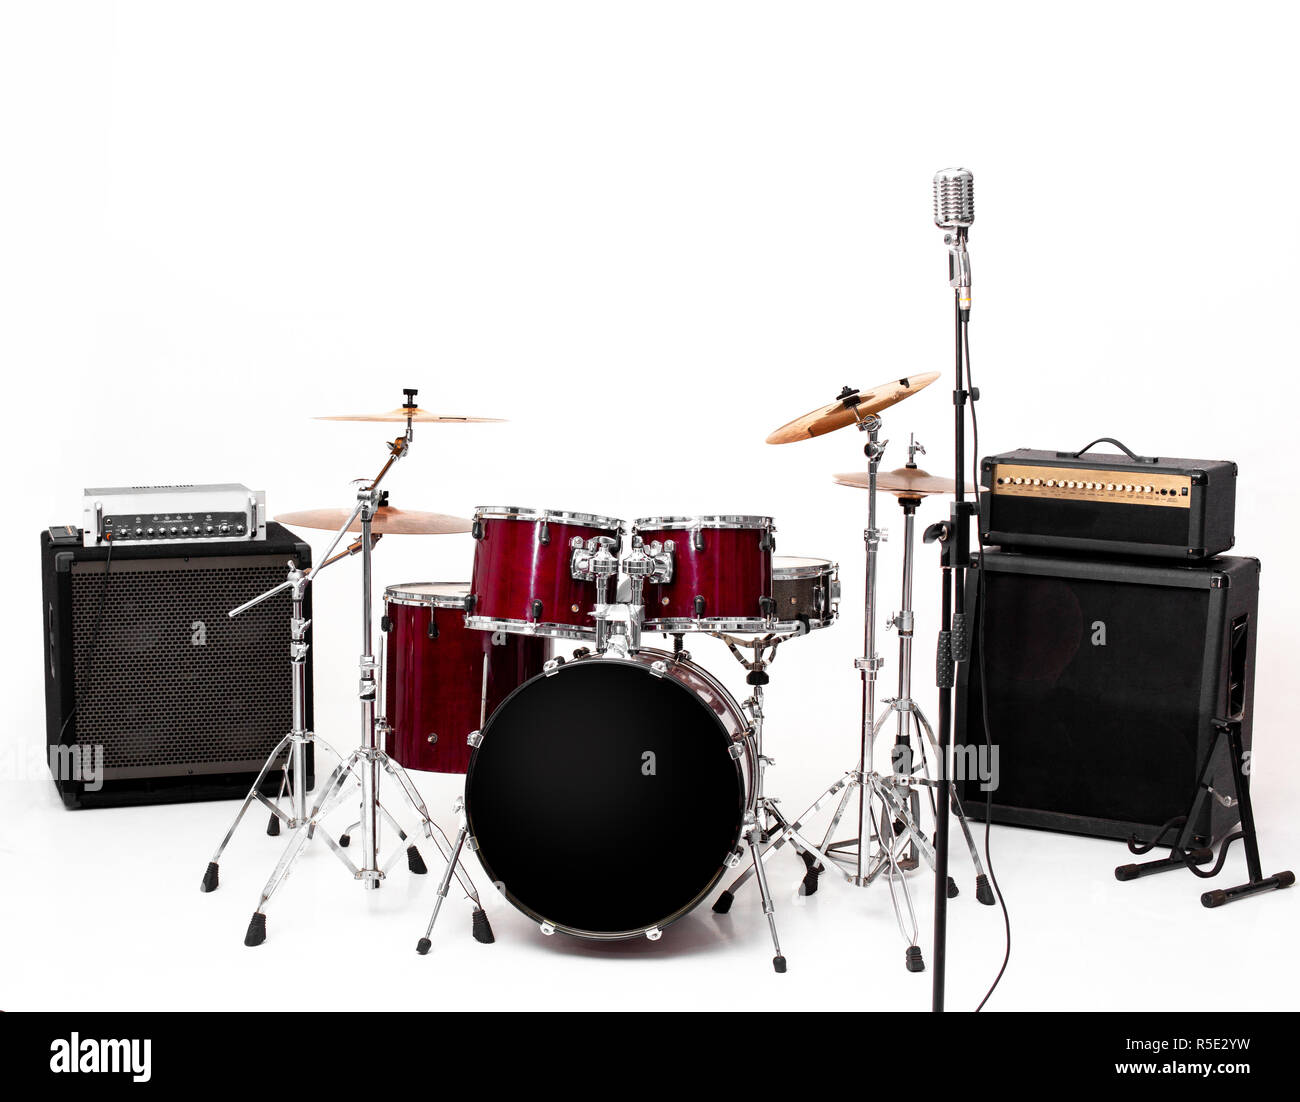 drum set on white background. musical instruments Stock Photo